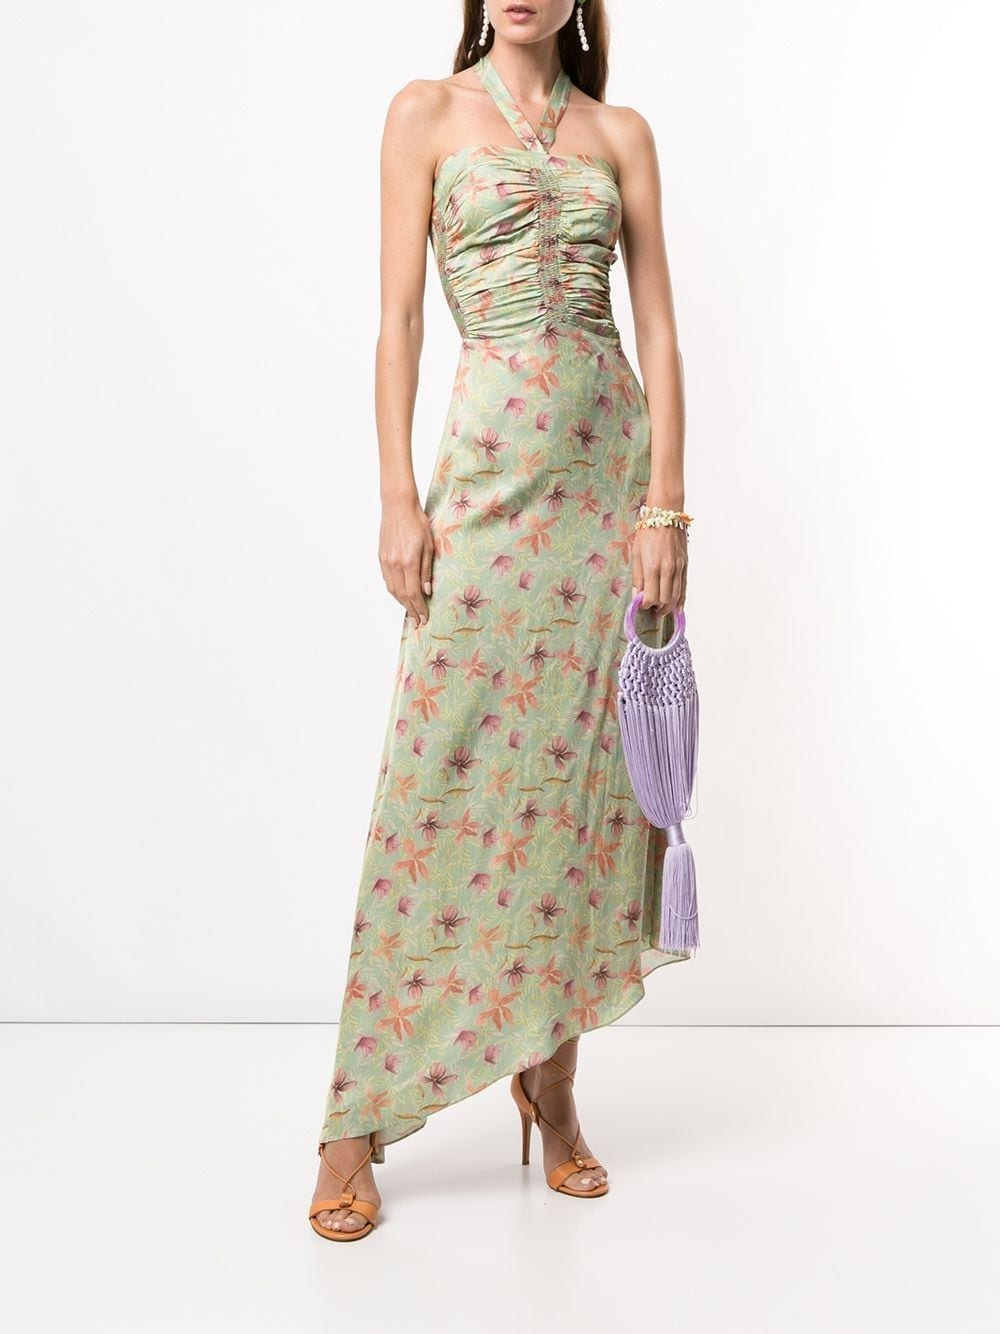 ALEXIS Leaf Print Asymmetric Dress